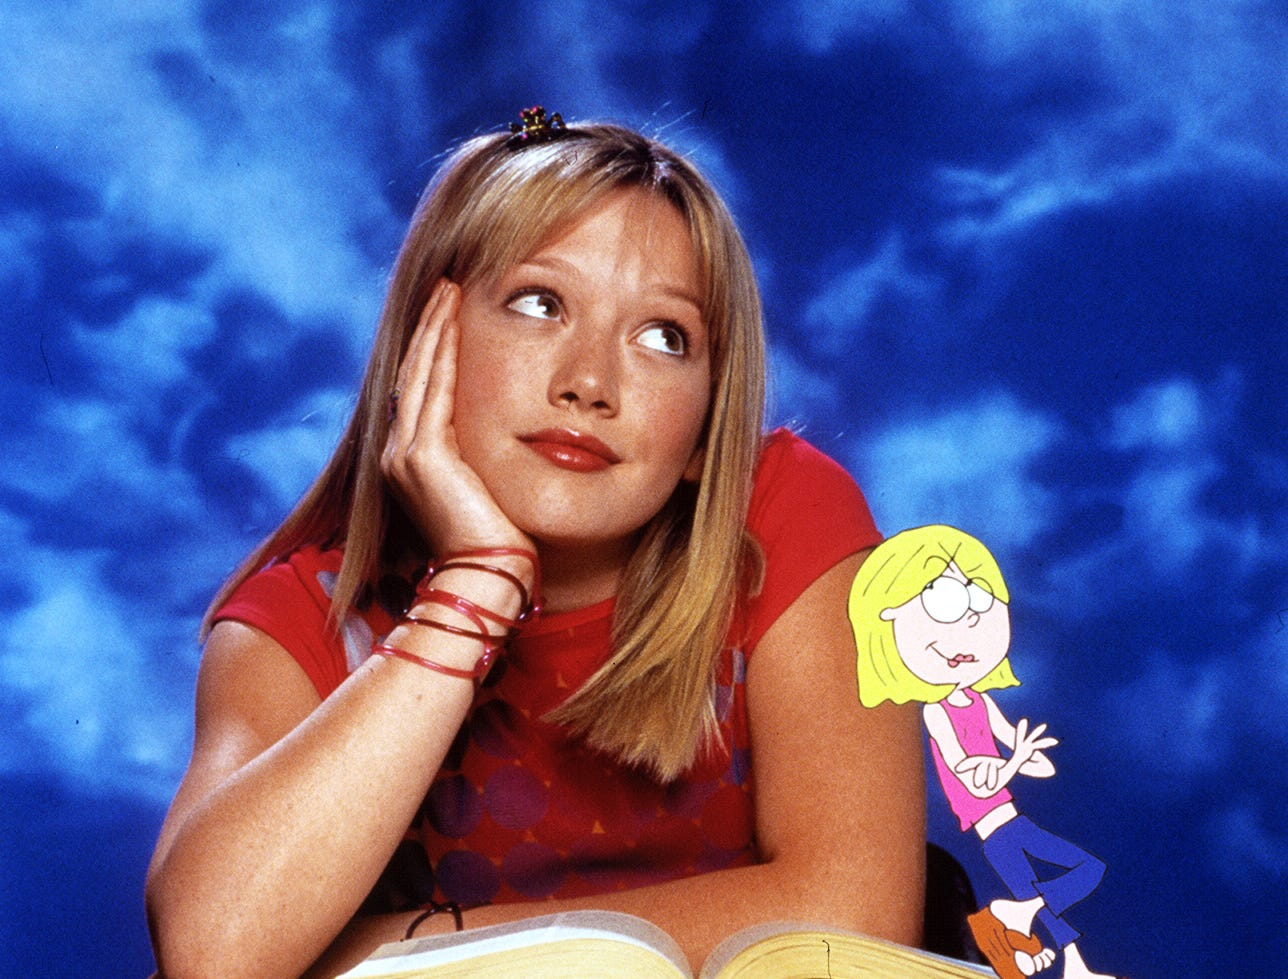 Hilary Duff and her animated friend Lizzie McGuire.  --- DATE TAKEN: rcd 12/00  No Byline   Disney        HO      - handout ORG XMIT: PX37070